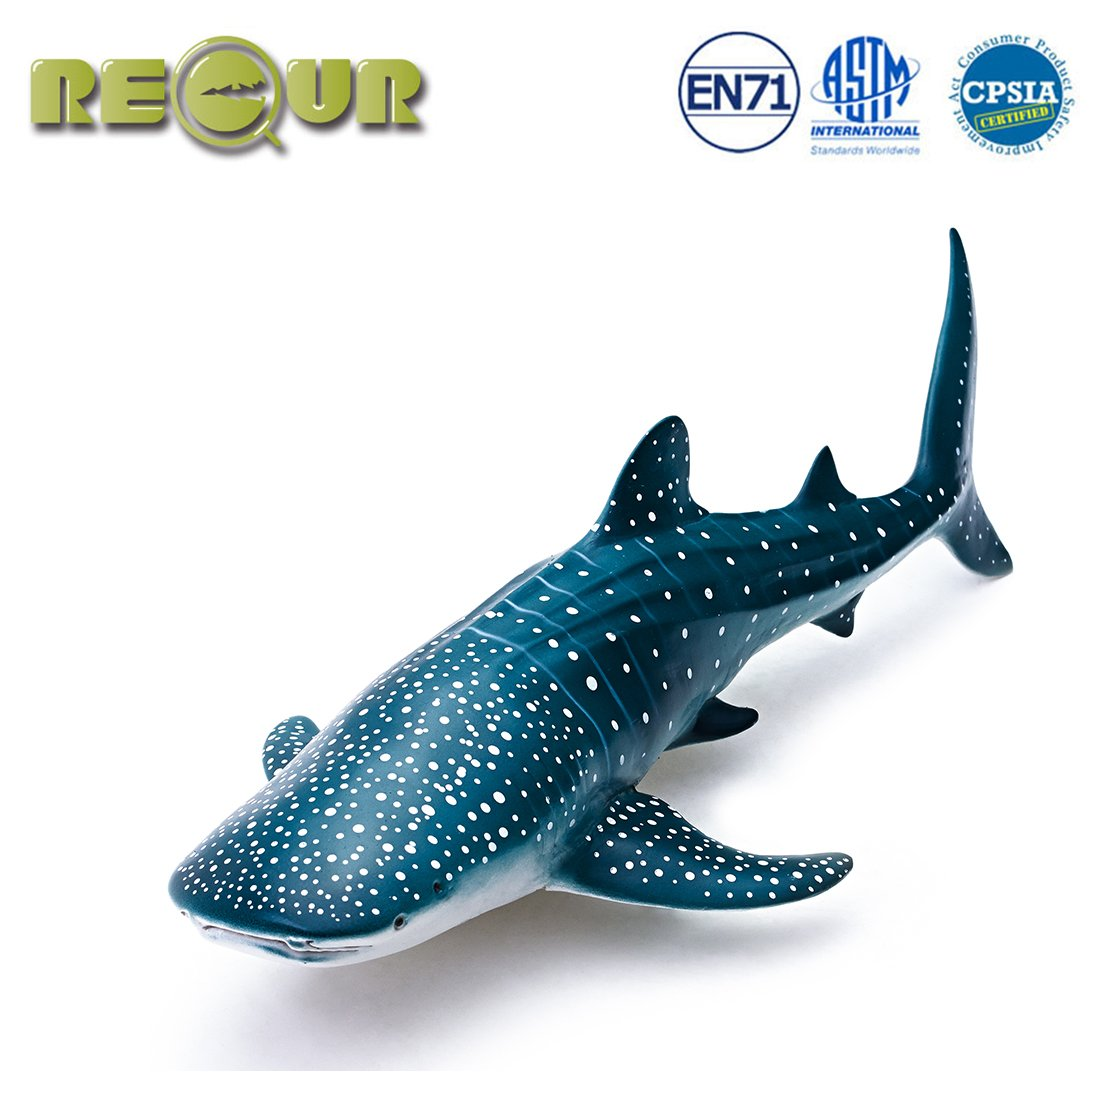 "RECUR Toys 12"" Whale Shark Figure Toys, Soft Hand-Painted Skin Texture Ocean Life Shark Figurine Collection-Replica 1:56 Scale Realistic Whale Shark Model Replica, Ideal for Collectors, Ages 3 and Up"